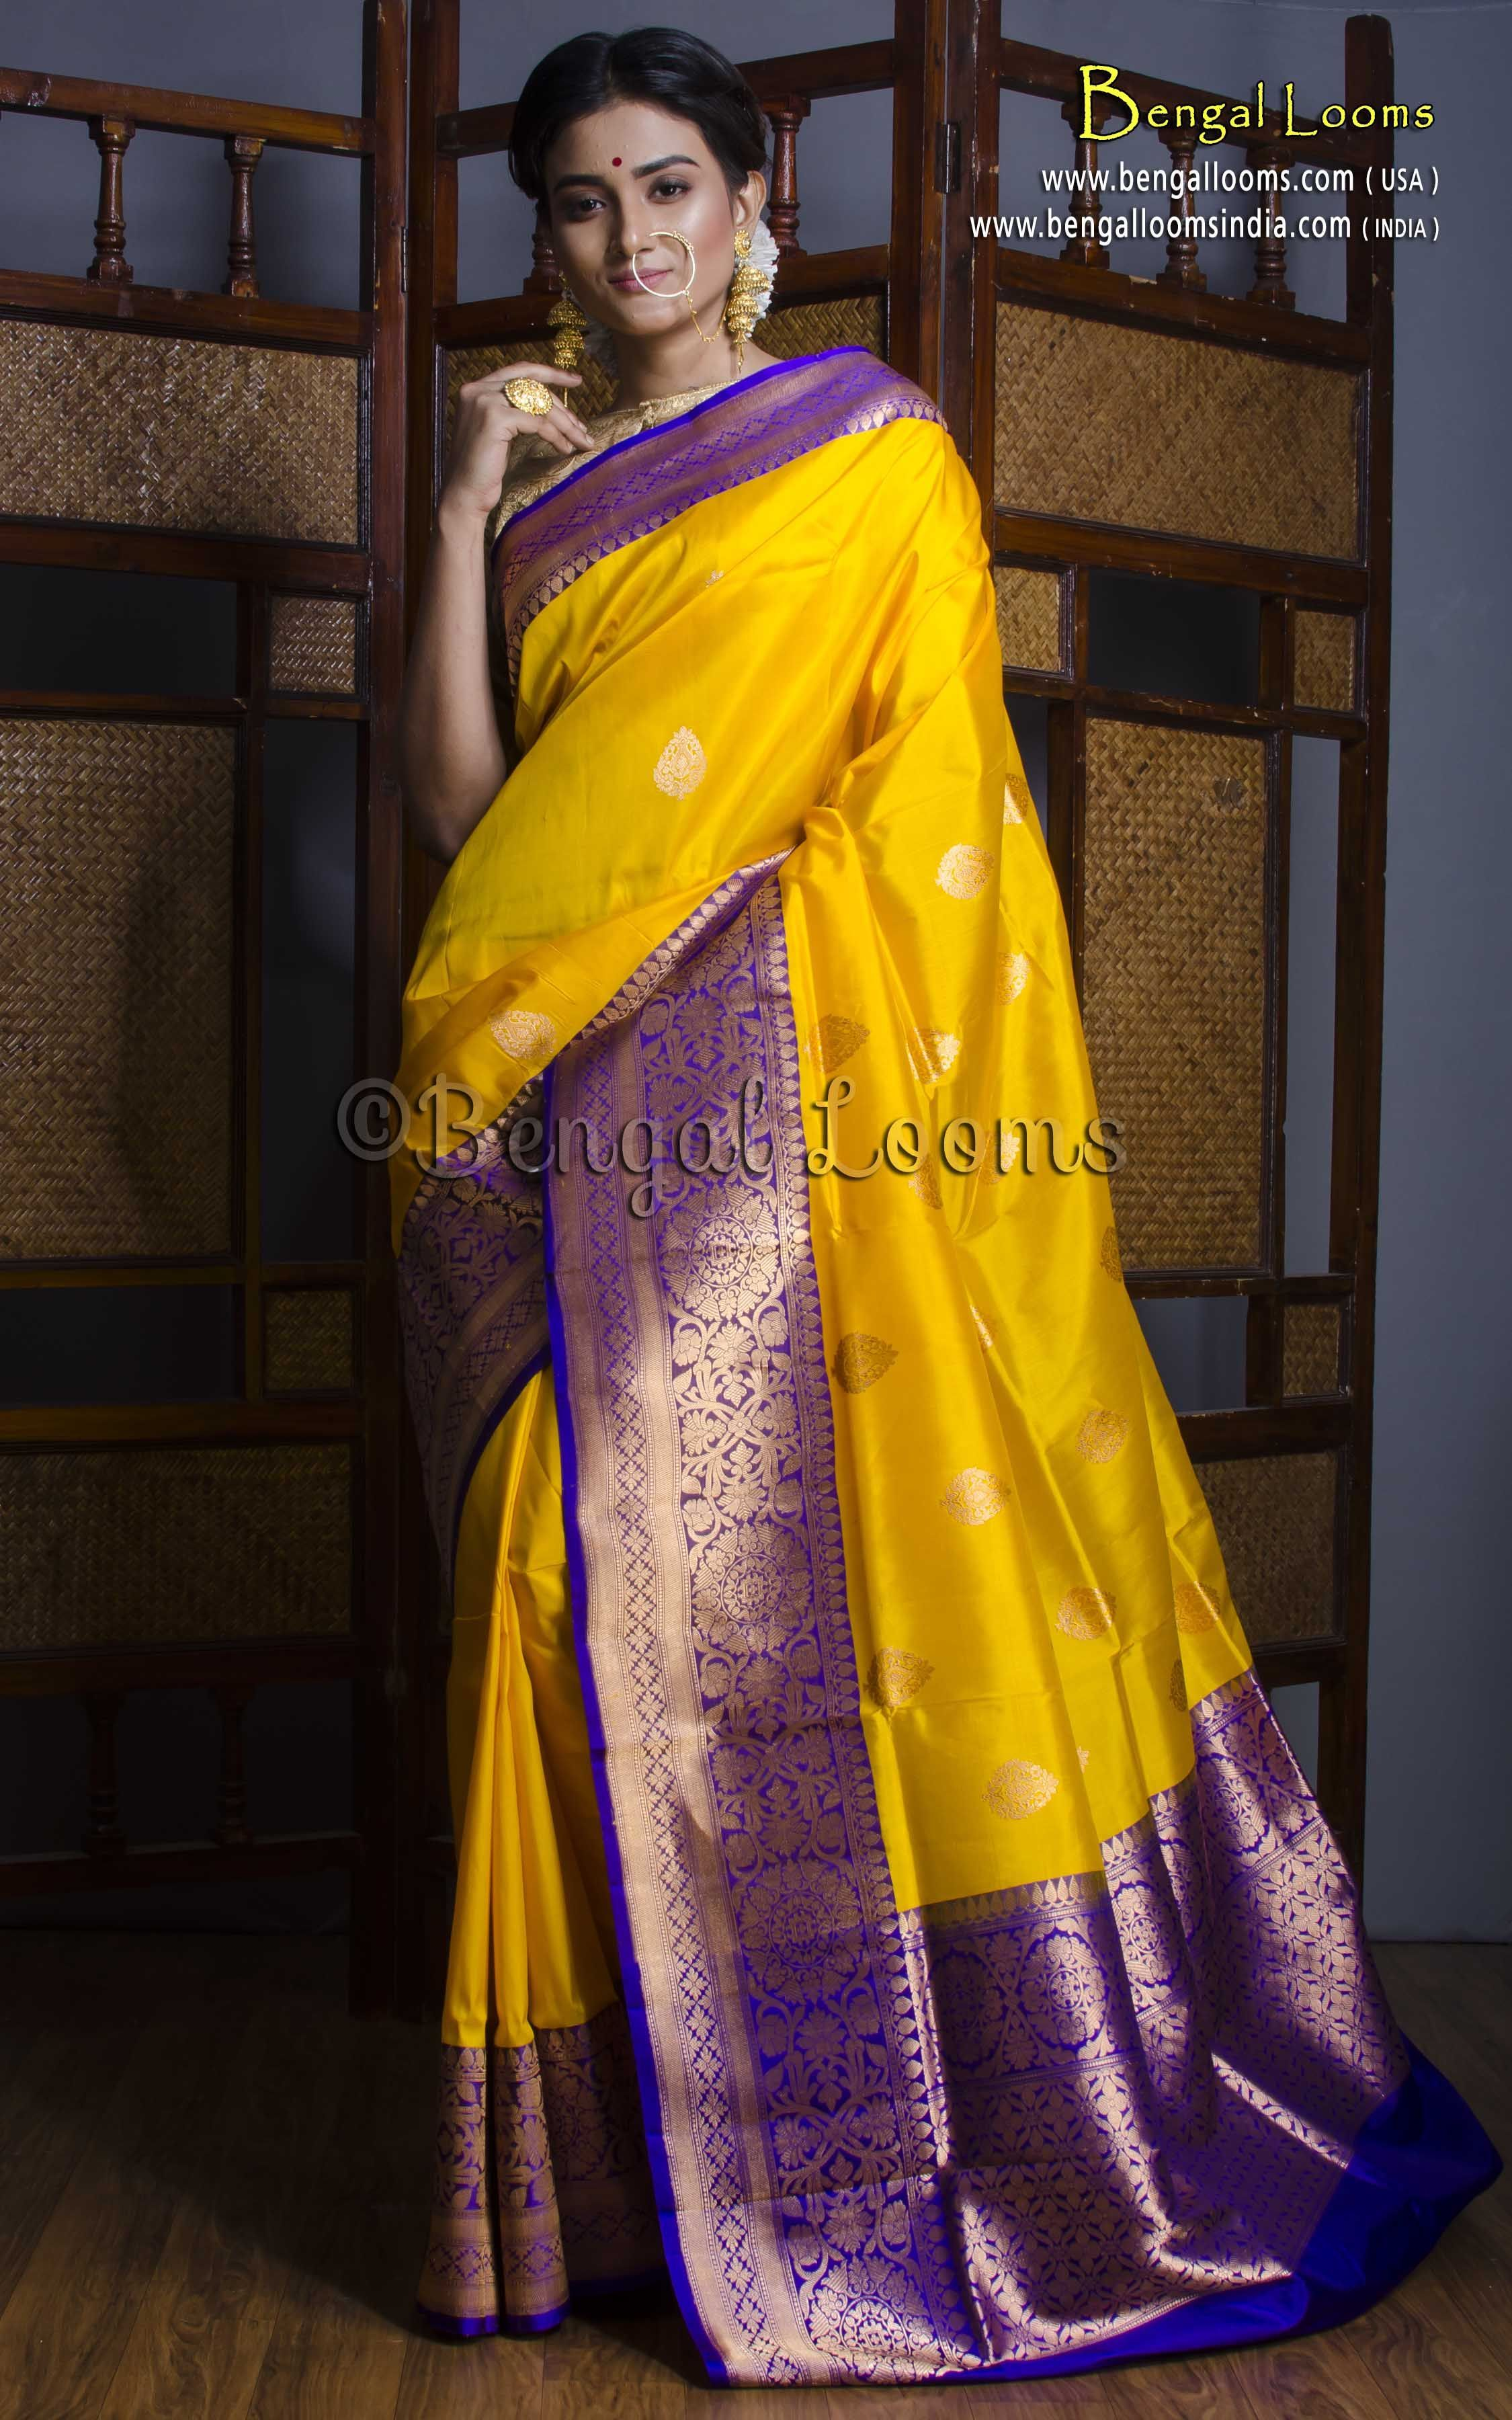 c5e92549019 Pure Handloom Katan Silk Banarasi Saree in Bright Yellow and ...